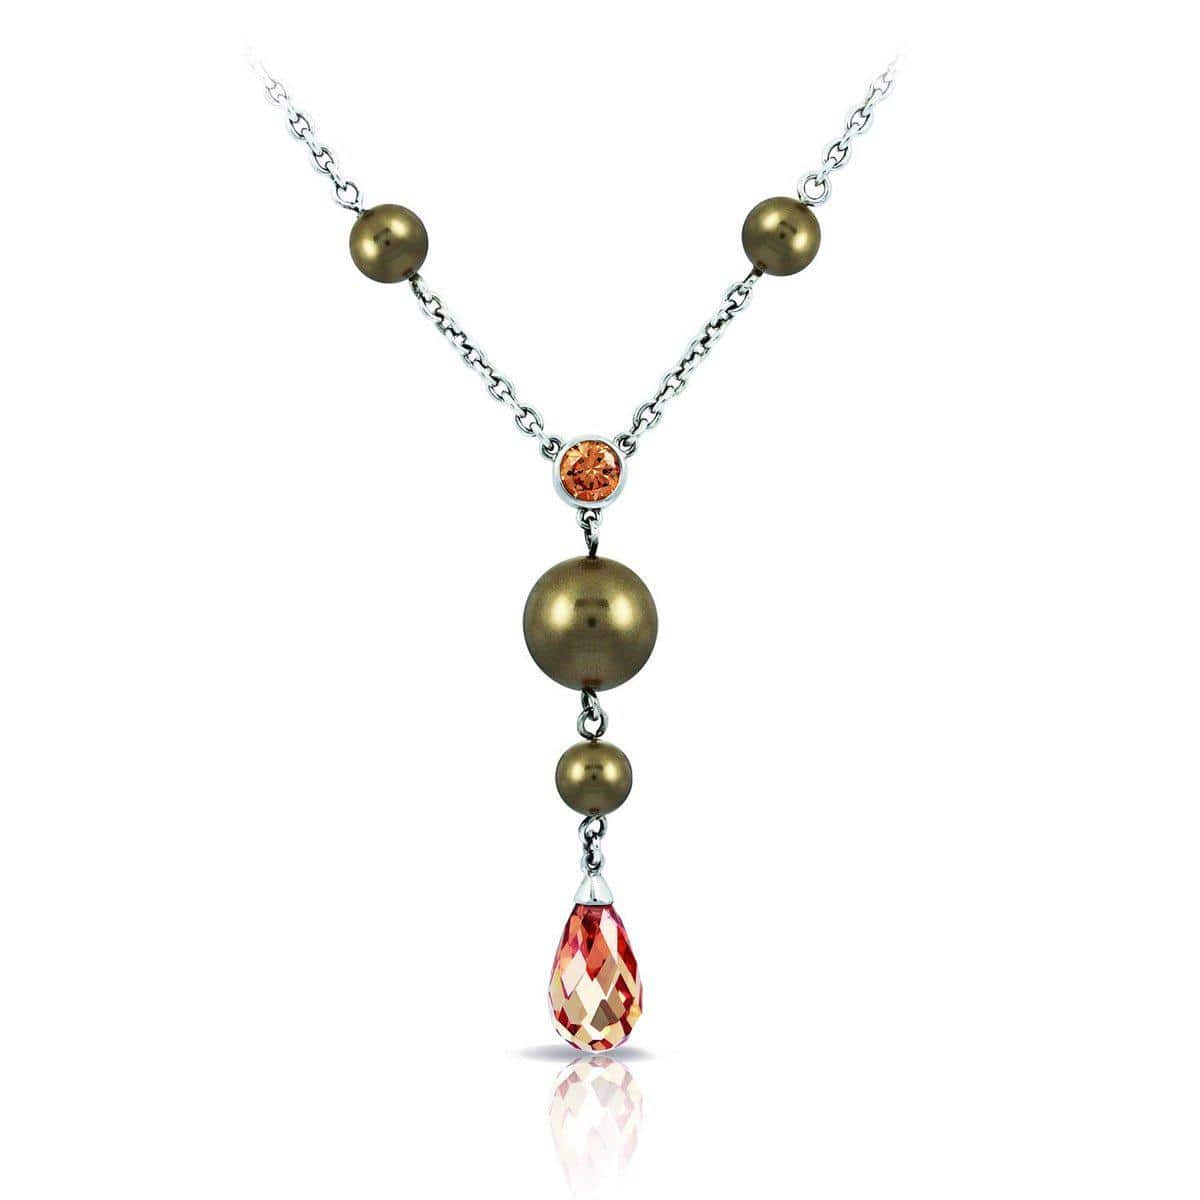 Alexandria Champagne Necklace-Belle Etoile-Renee Taylor Gallery